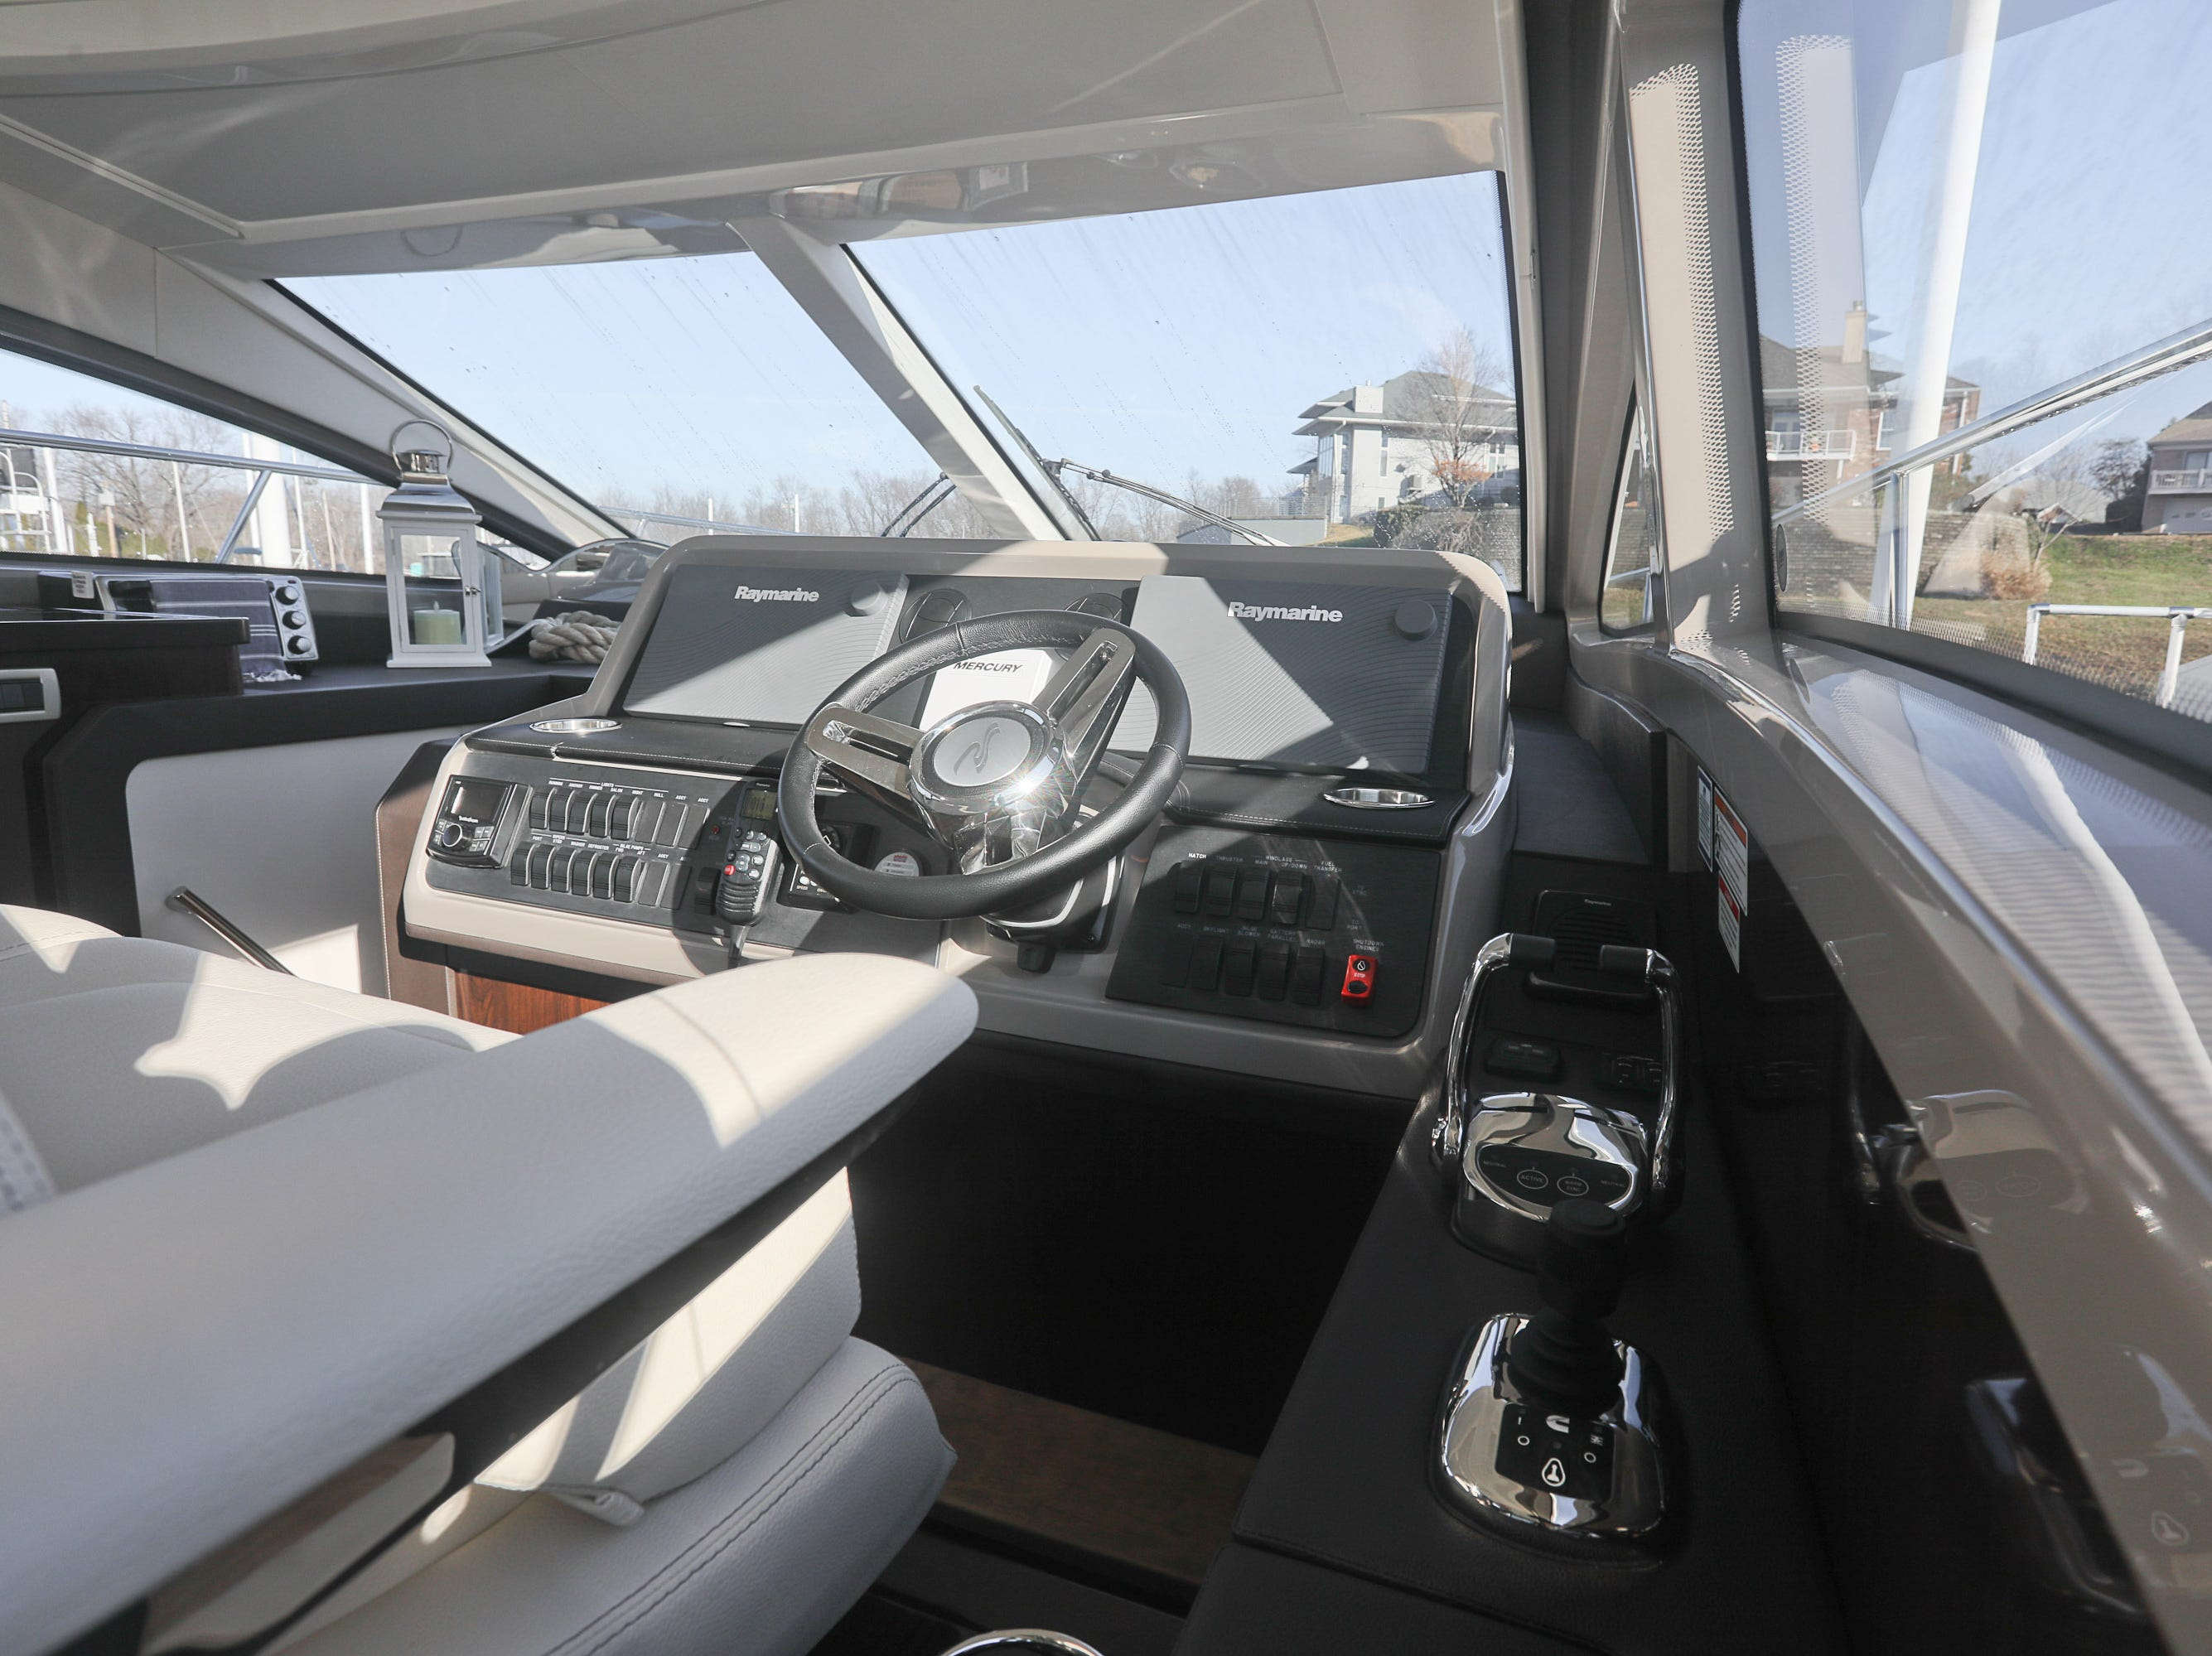 The helm of a 2017 Sea Ray 400 Sundancer at the Captain's Quarters marina in Louisville, KY. Dec. 17, 2018